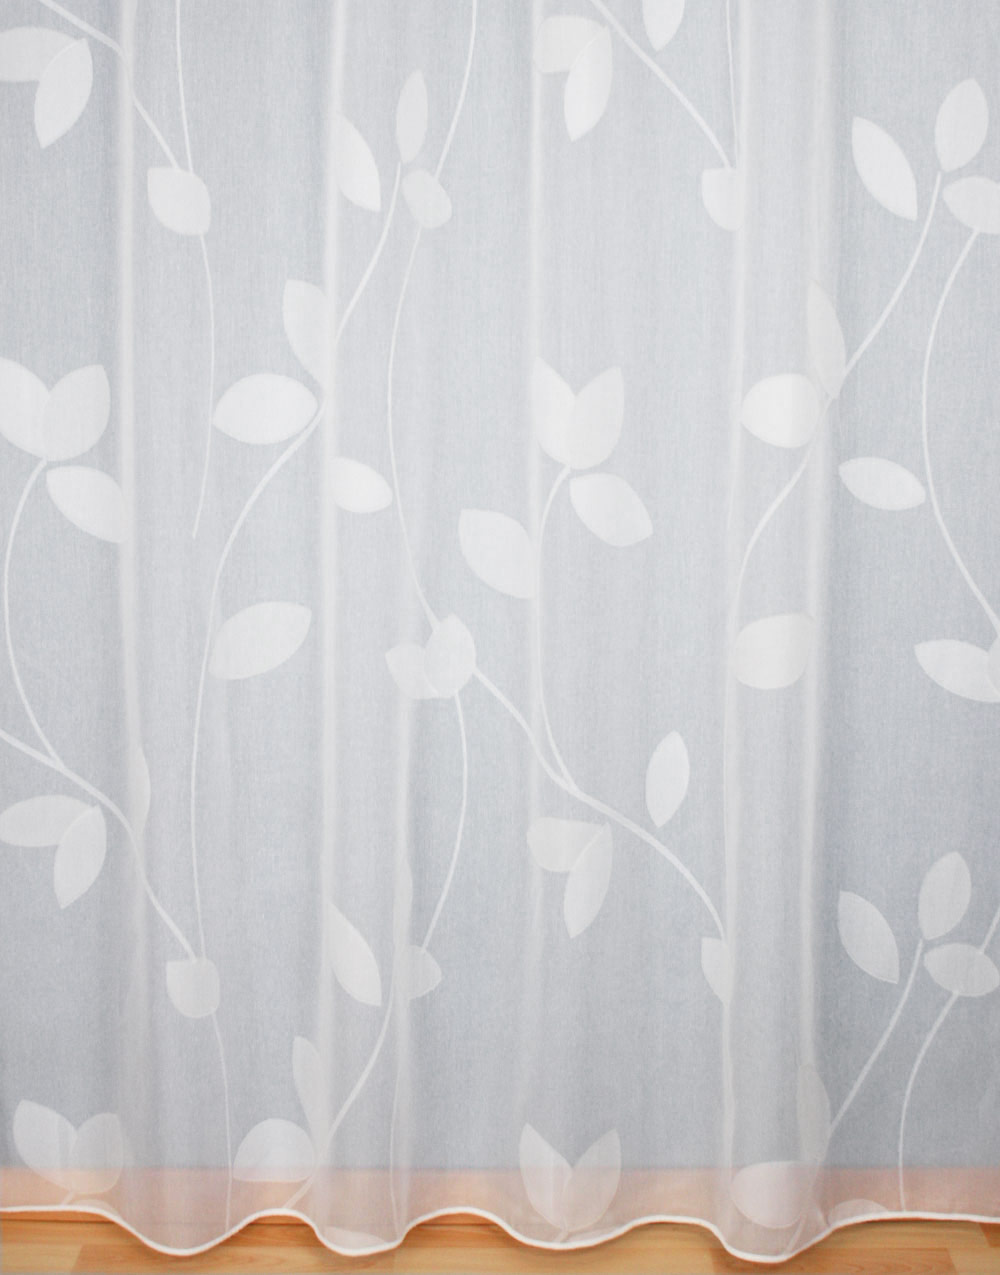 White Sheer curtain with leaves